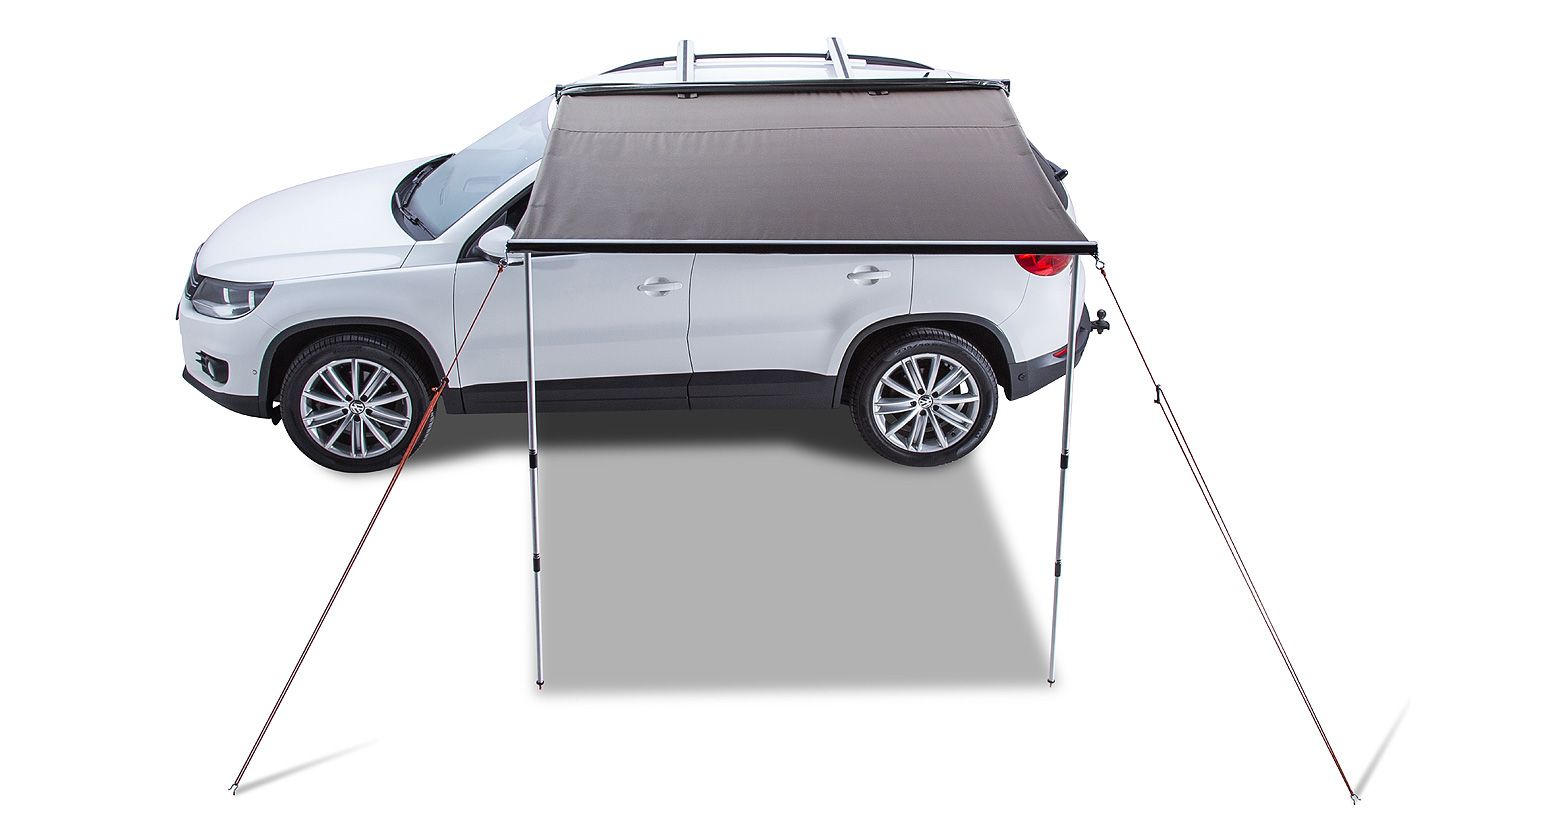 Sunseeker 20m Awning